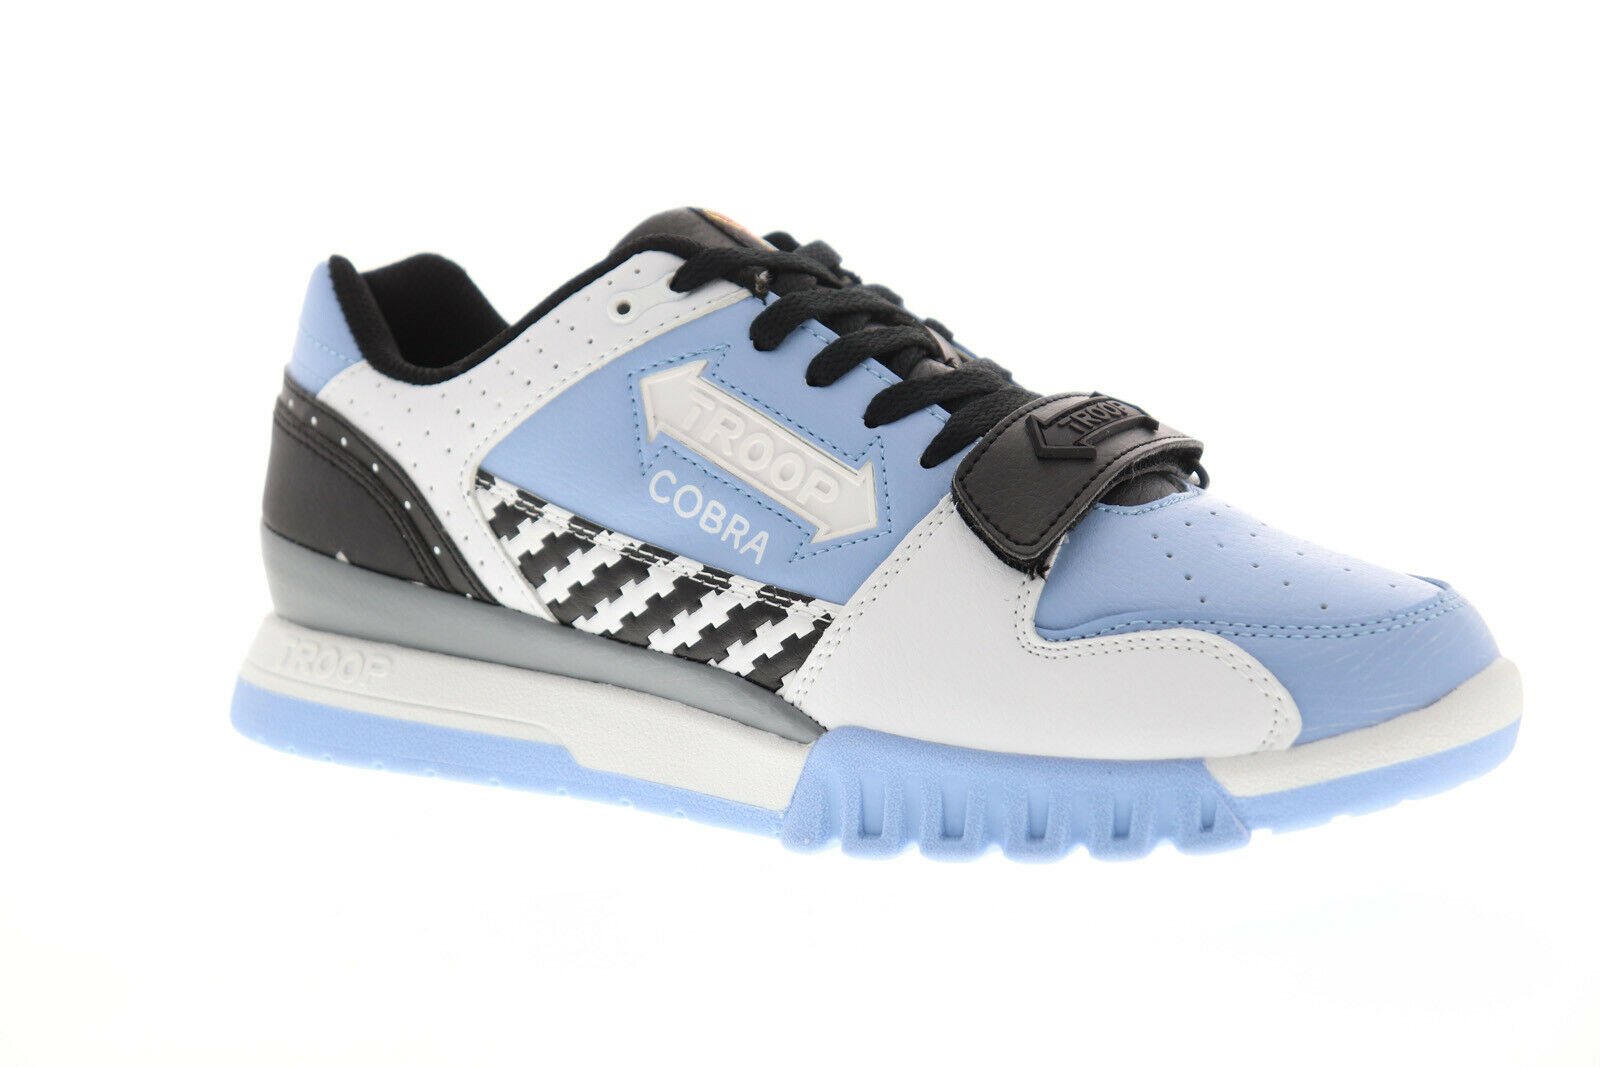 World Of Troop Cobra Light Mens blueee Synthetic Low Top Sneakers shoes